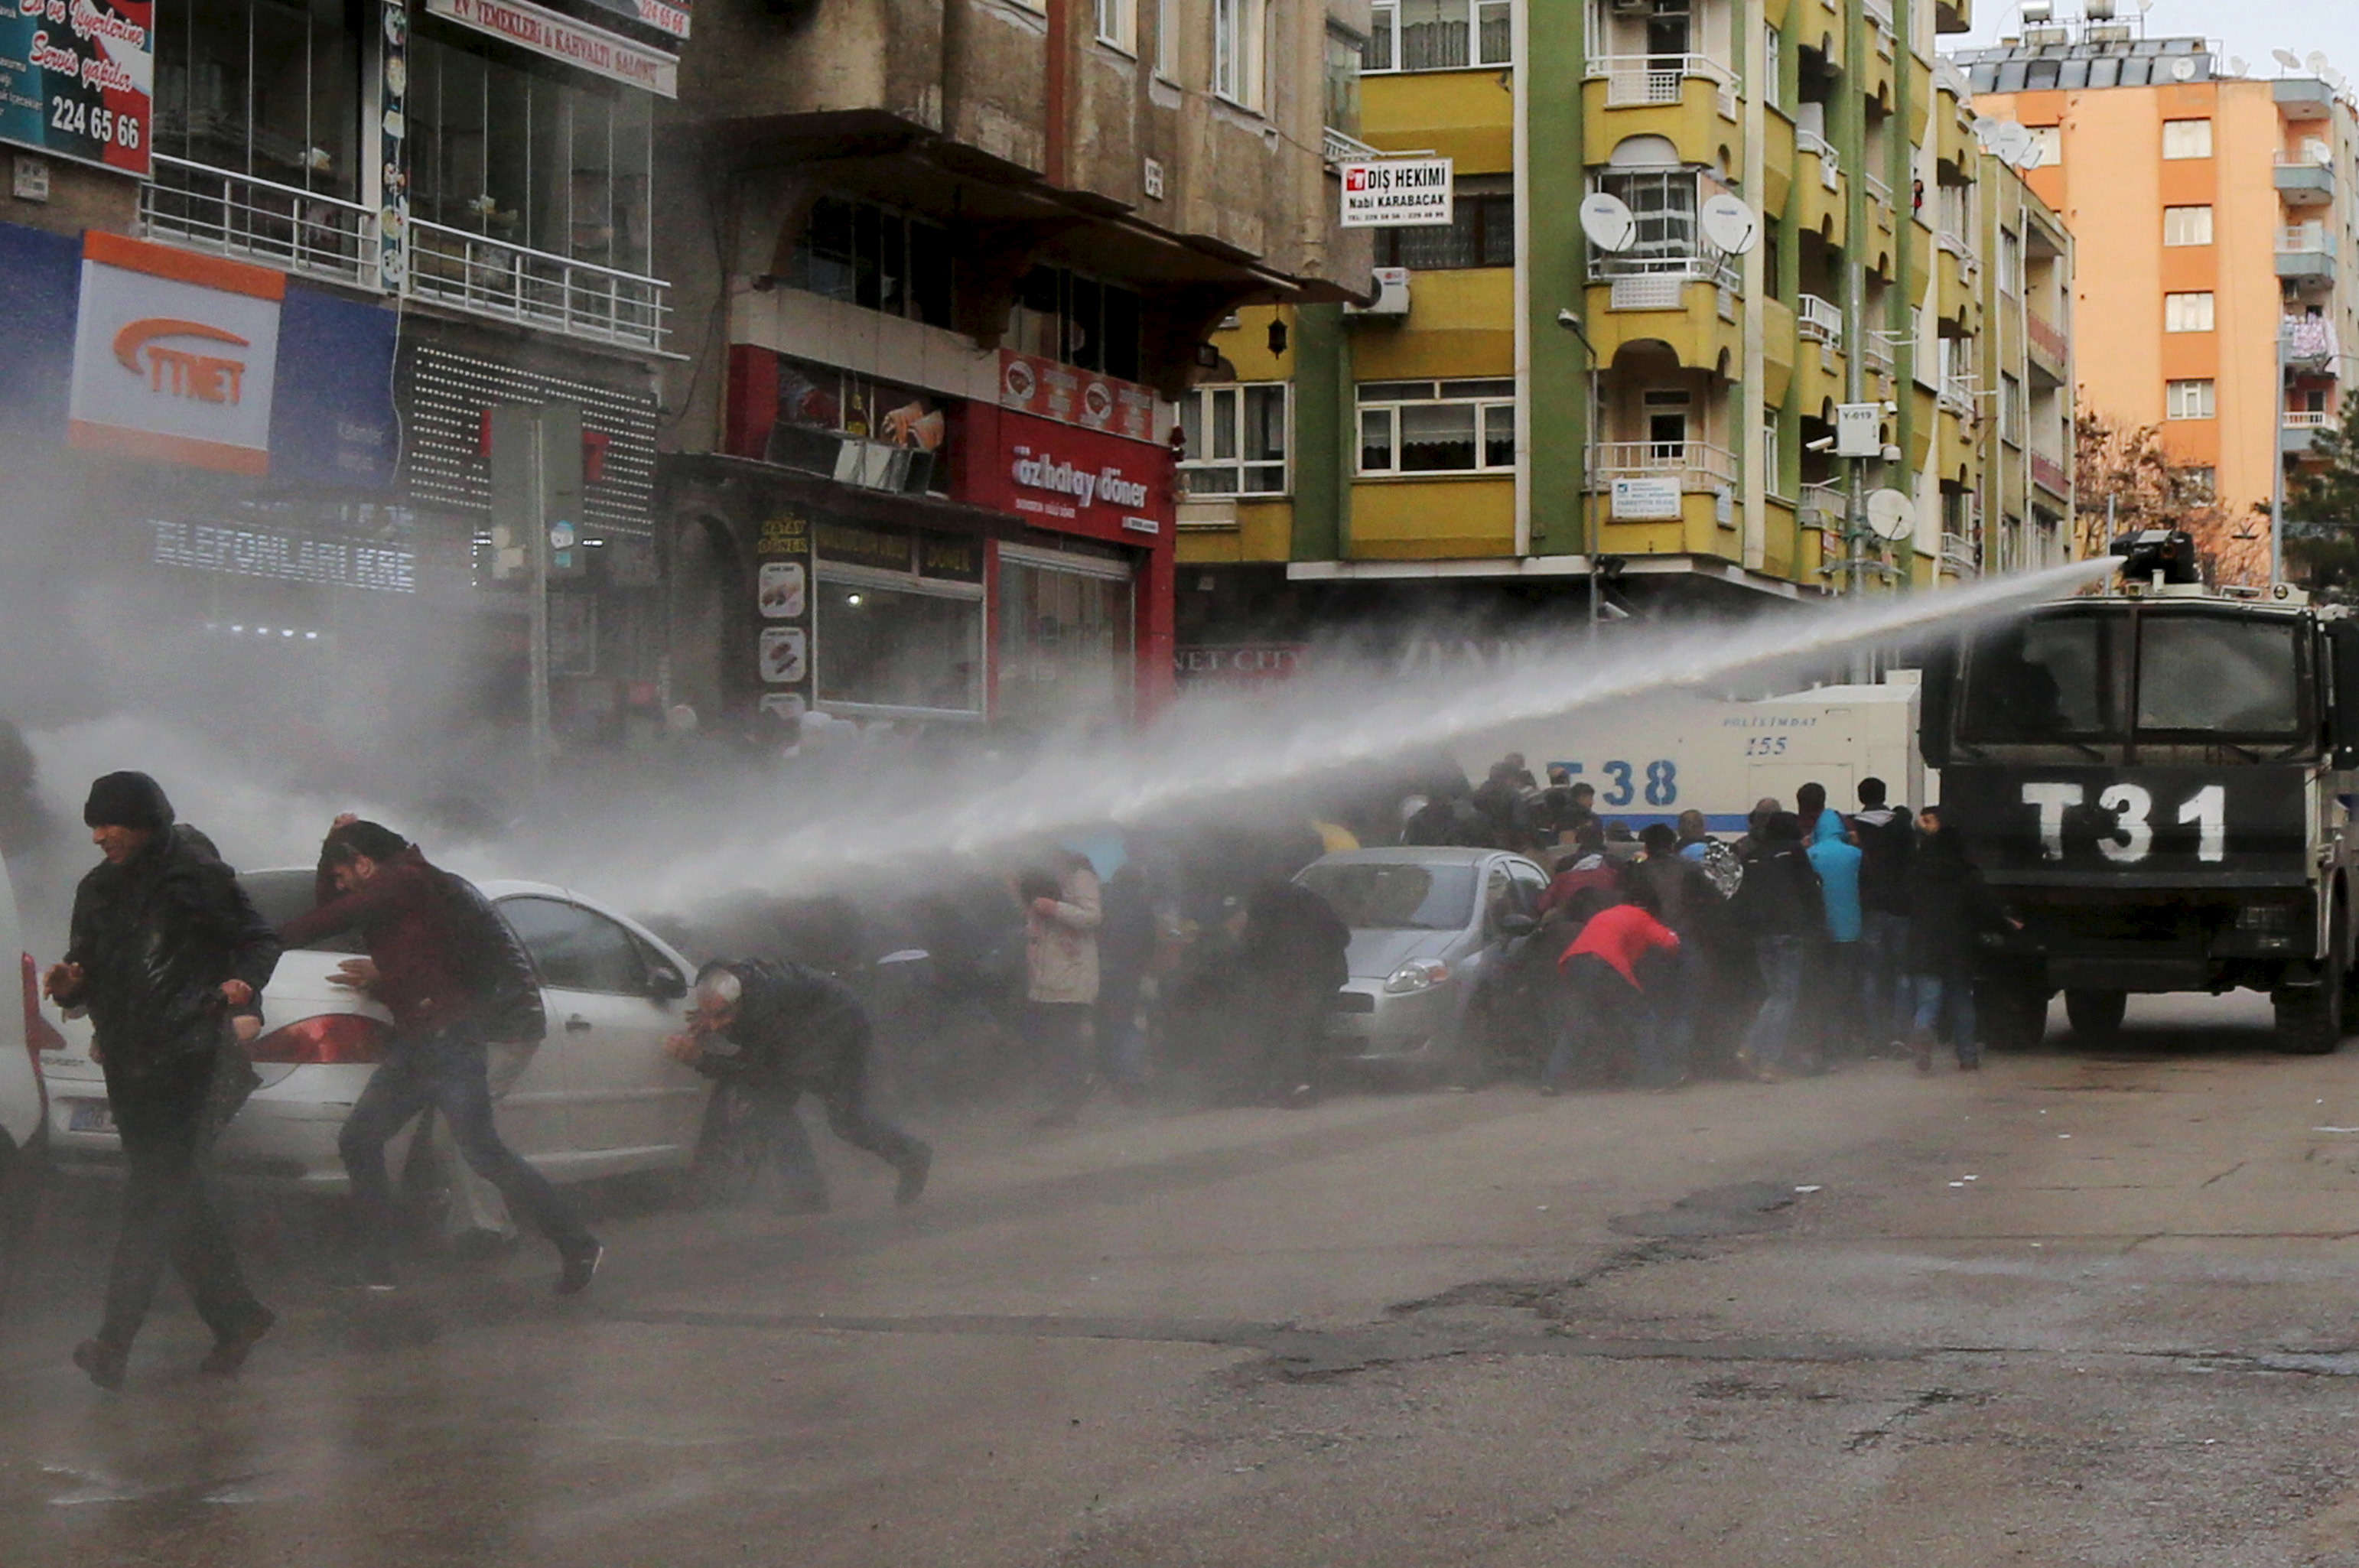 Turkish riot police use a water cannon to disperse Kurdish demonstrators during a protest against a curfew in Sur district and security operations in the region, in the southeastern city of Diyarbakir, Turkey January 17, 2016.